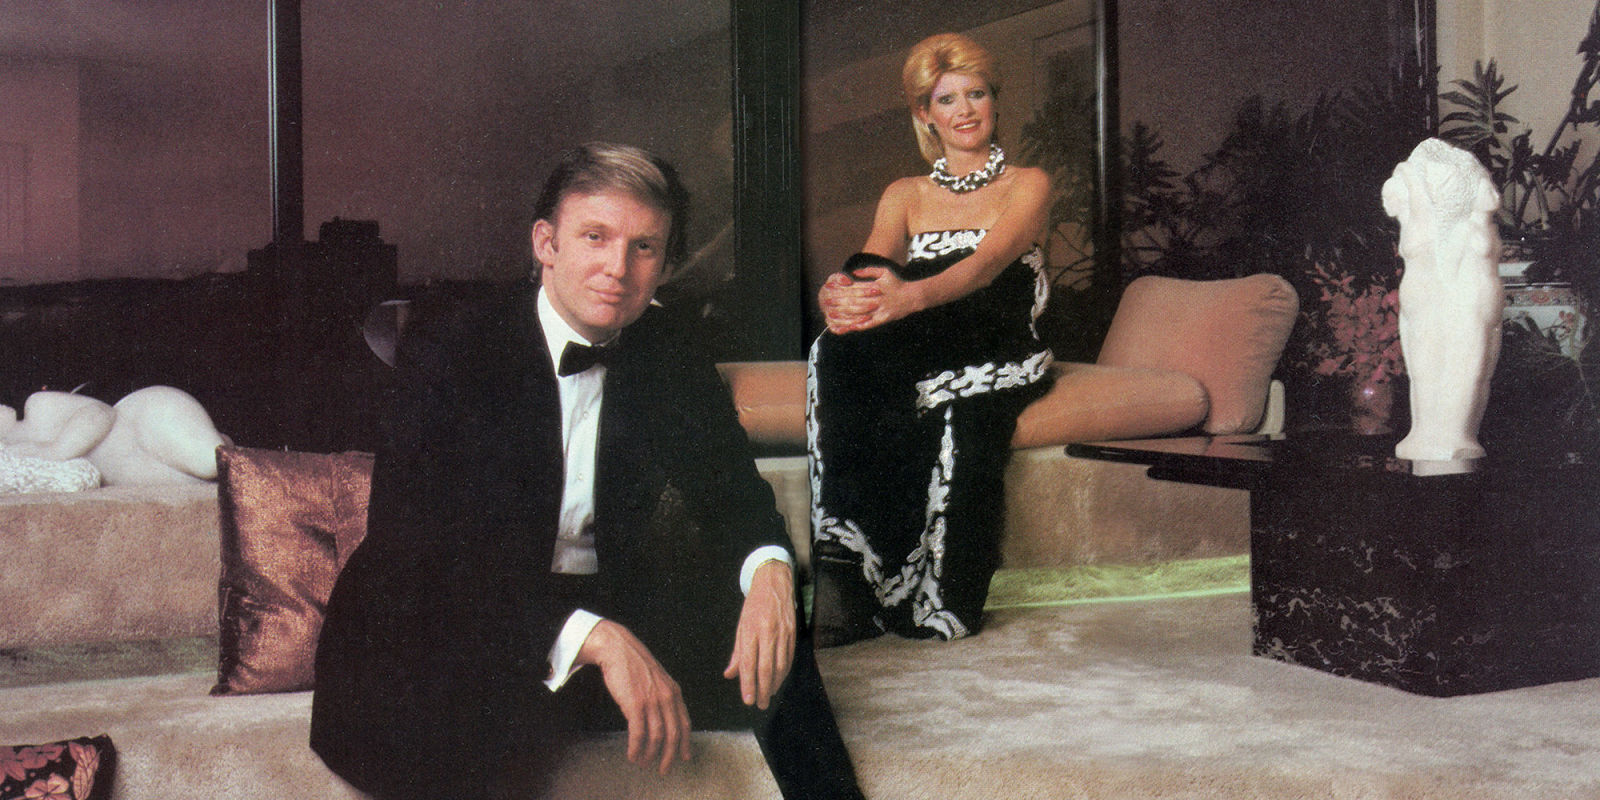 1983 Donald Trump Profile Interview About Donald 80s